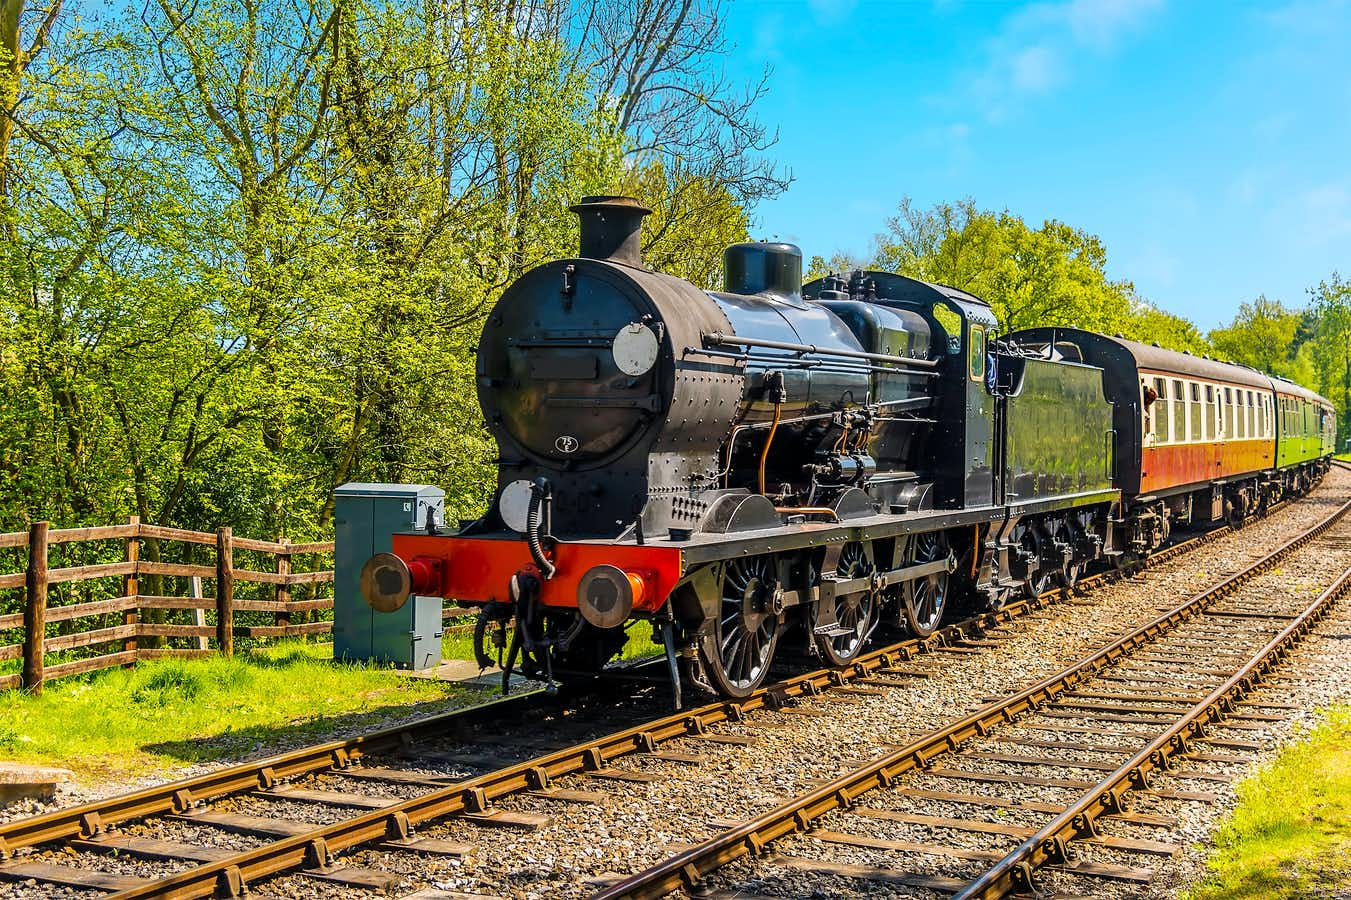 The Delights of Eastbourne, Bluebell Railway and Stately Sussex